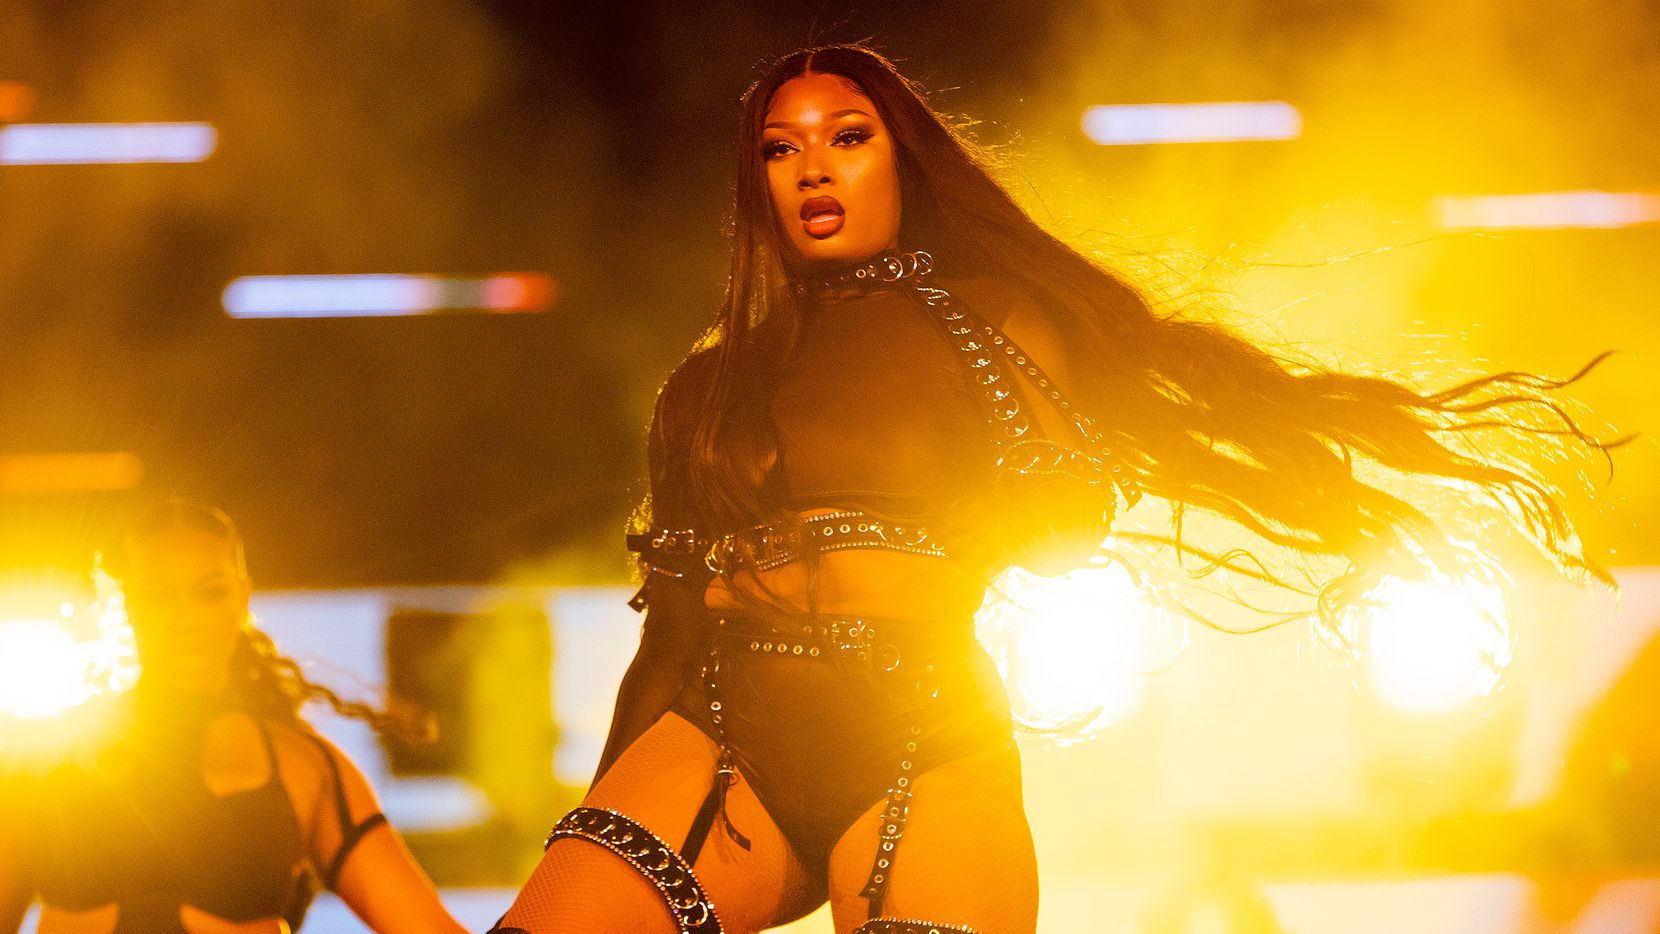 Megan Thee Stallion performed at Red Rocks Amphitheatre on Sept. 2 in Morrison, Colo.